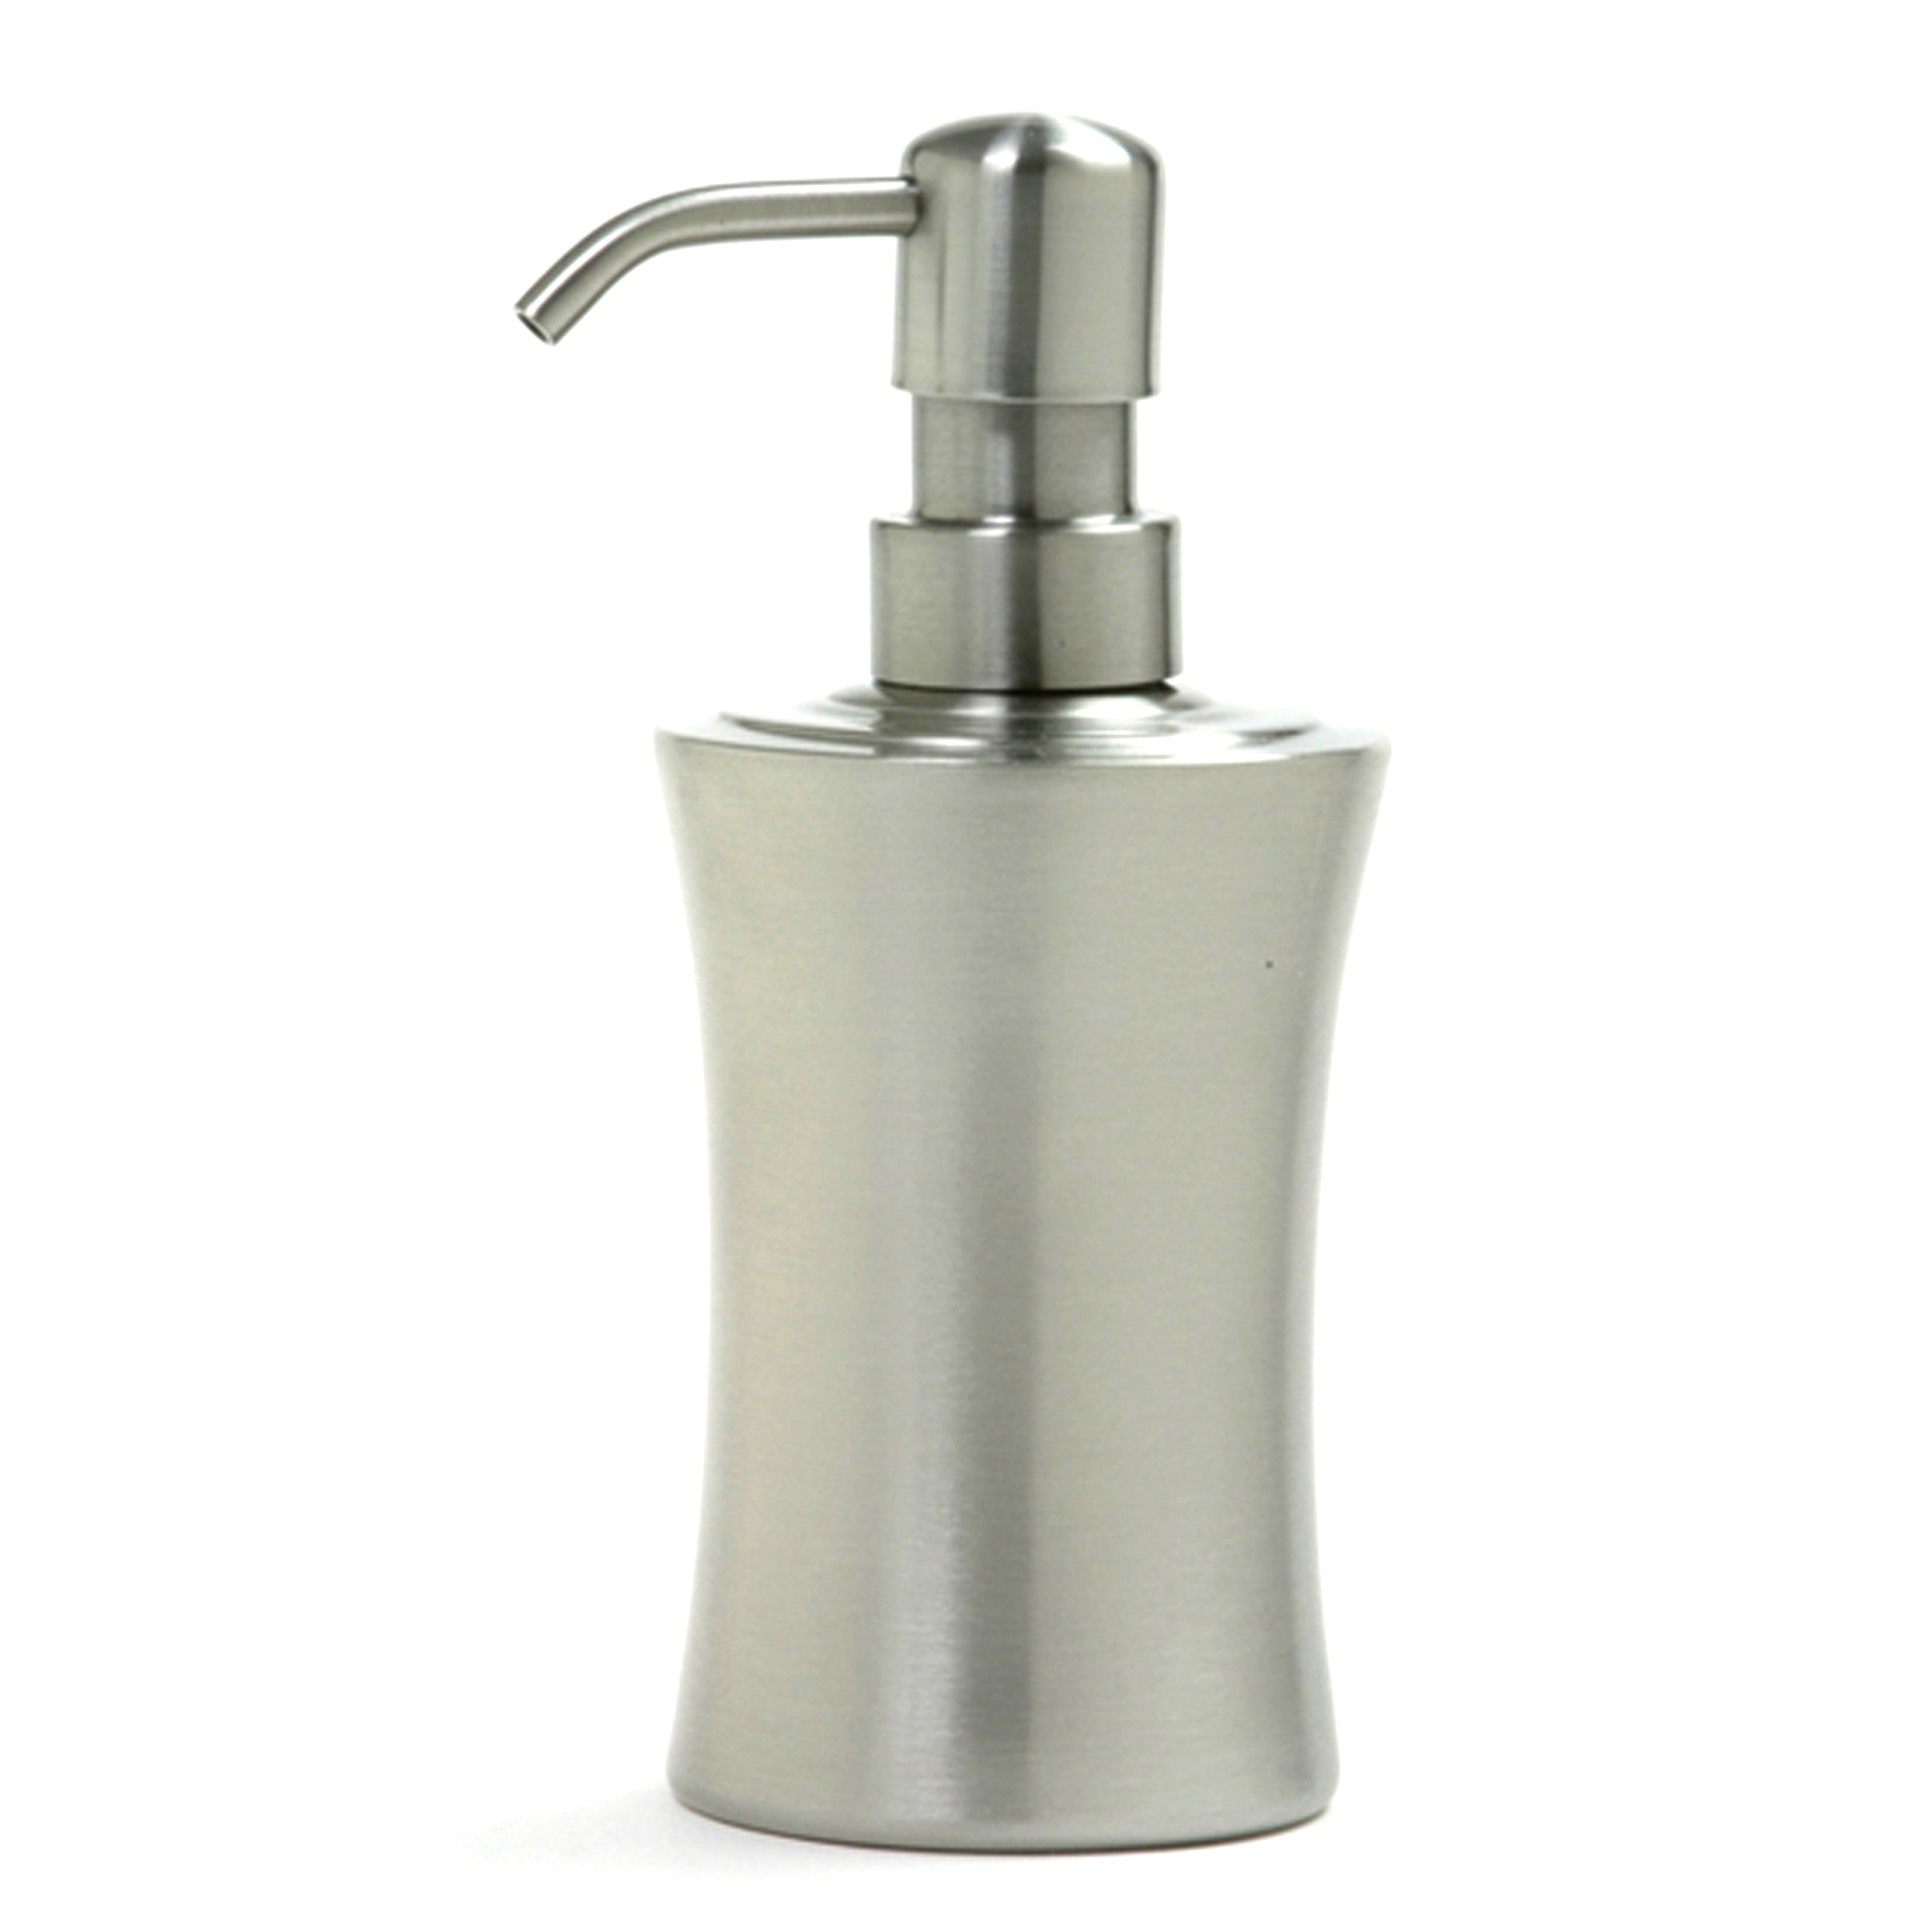 Norpro Stainless Steel Soap Dispenser, 12 Ounce